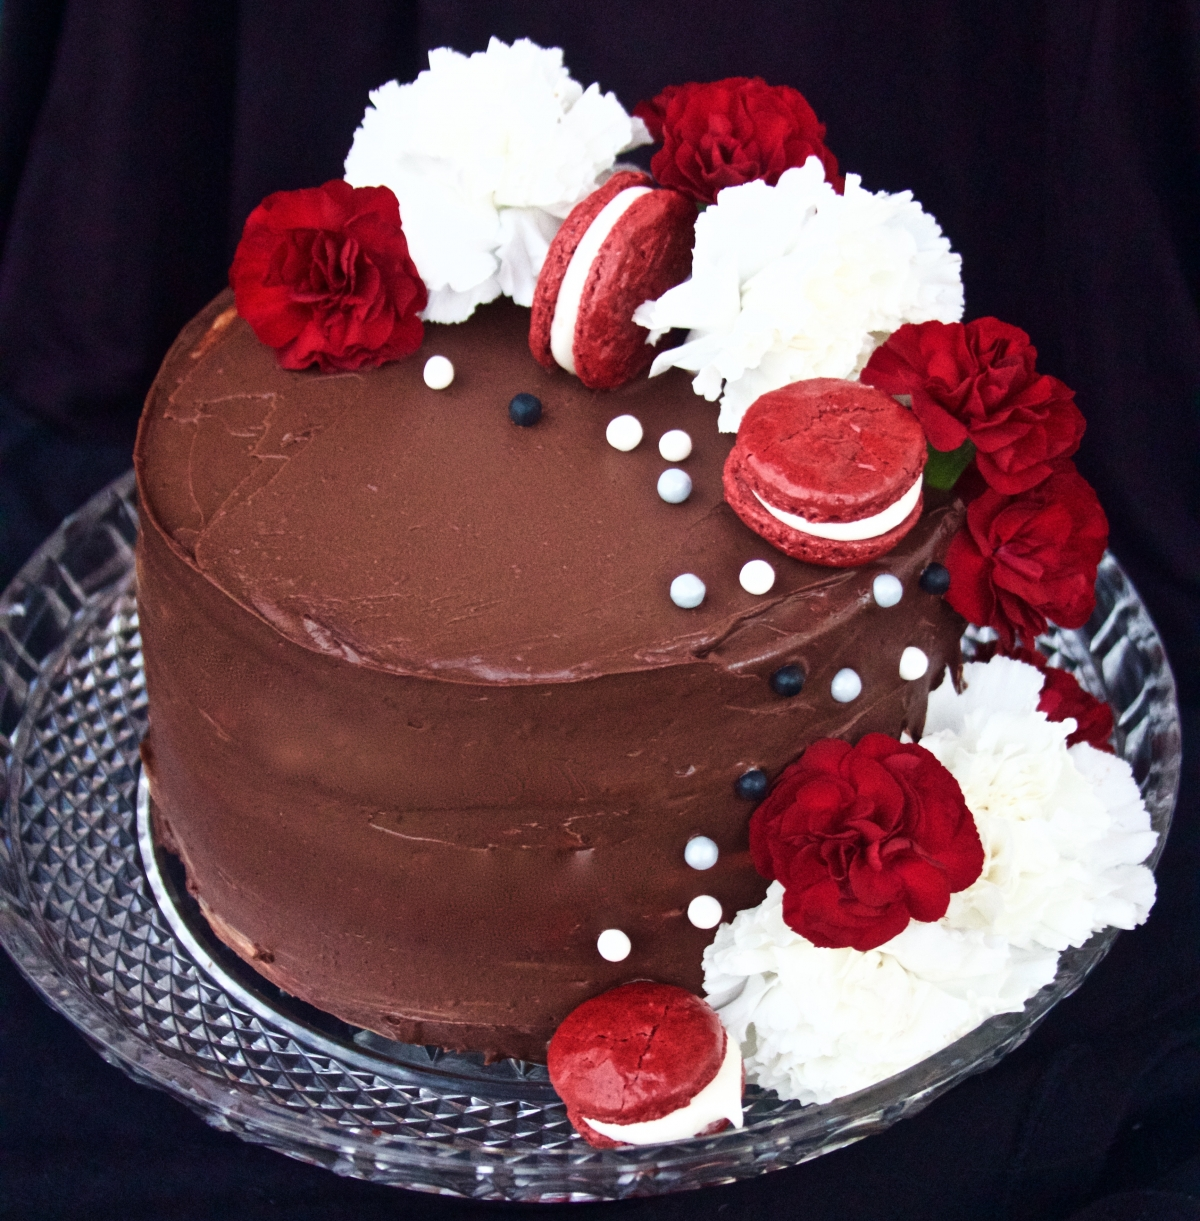 Red Velvet Layer Cake With White Chocolate Mousse And